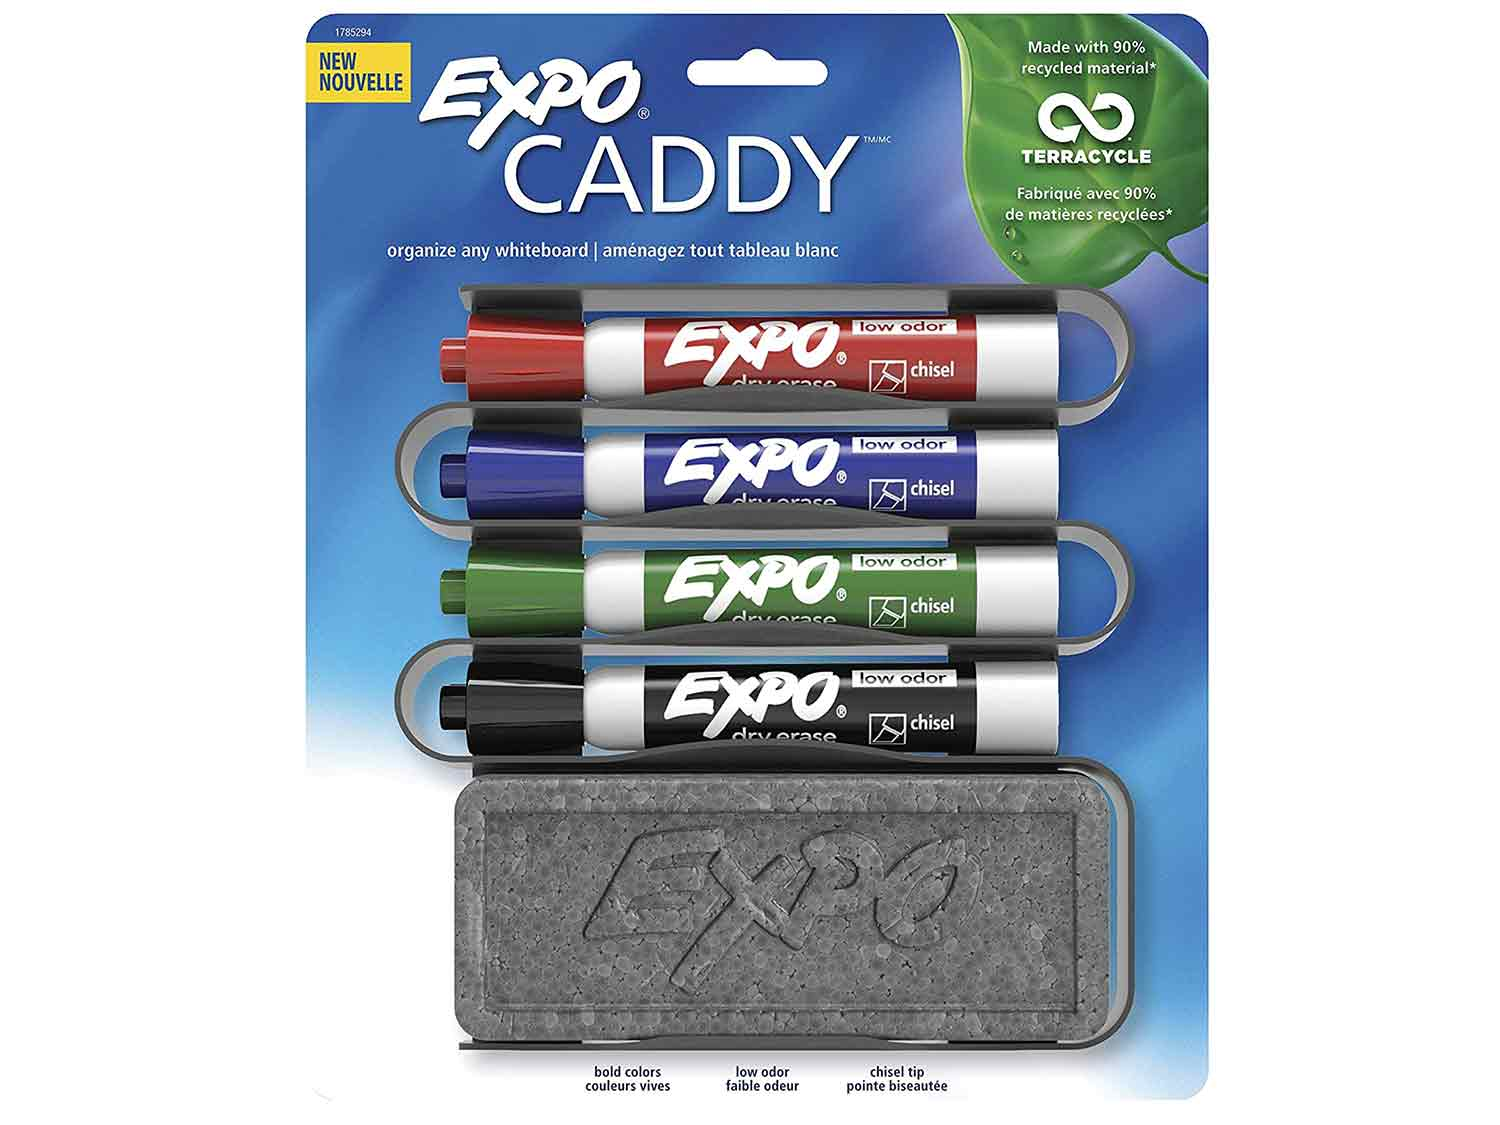 EXPO 1785294 Low-Odor Dry Erase Set, Chisel Tip, Assorted Colors, 5-Piece with Recycled Material Marker Caddy